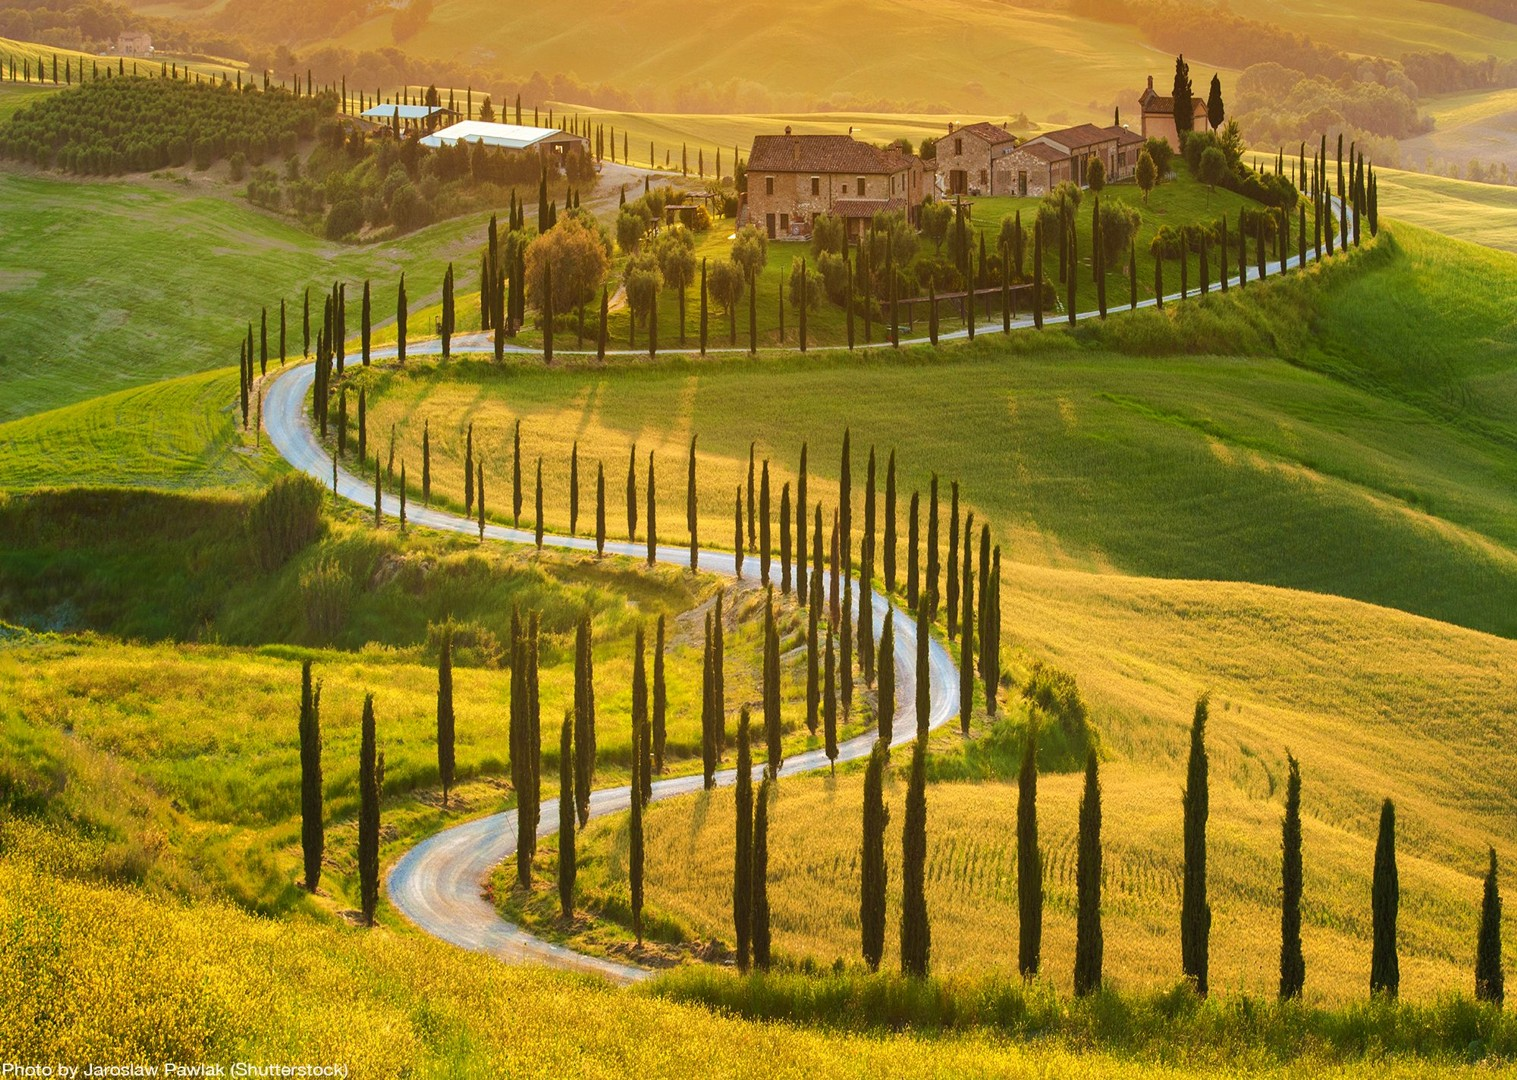 cypress-snakes-tuscany-leisure-bike-tour-self-guided.jpg - Italy - Classic Tuscany - Self-Guided Leisure Cycling Holiday - Italia Leisure and Family Cycling